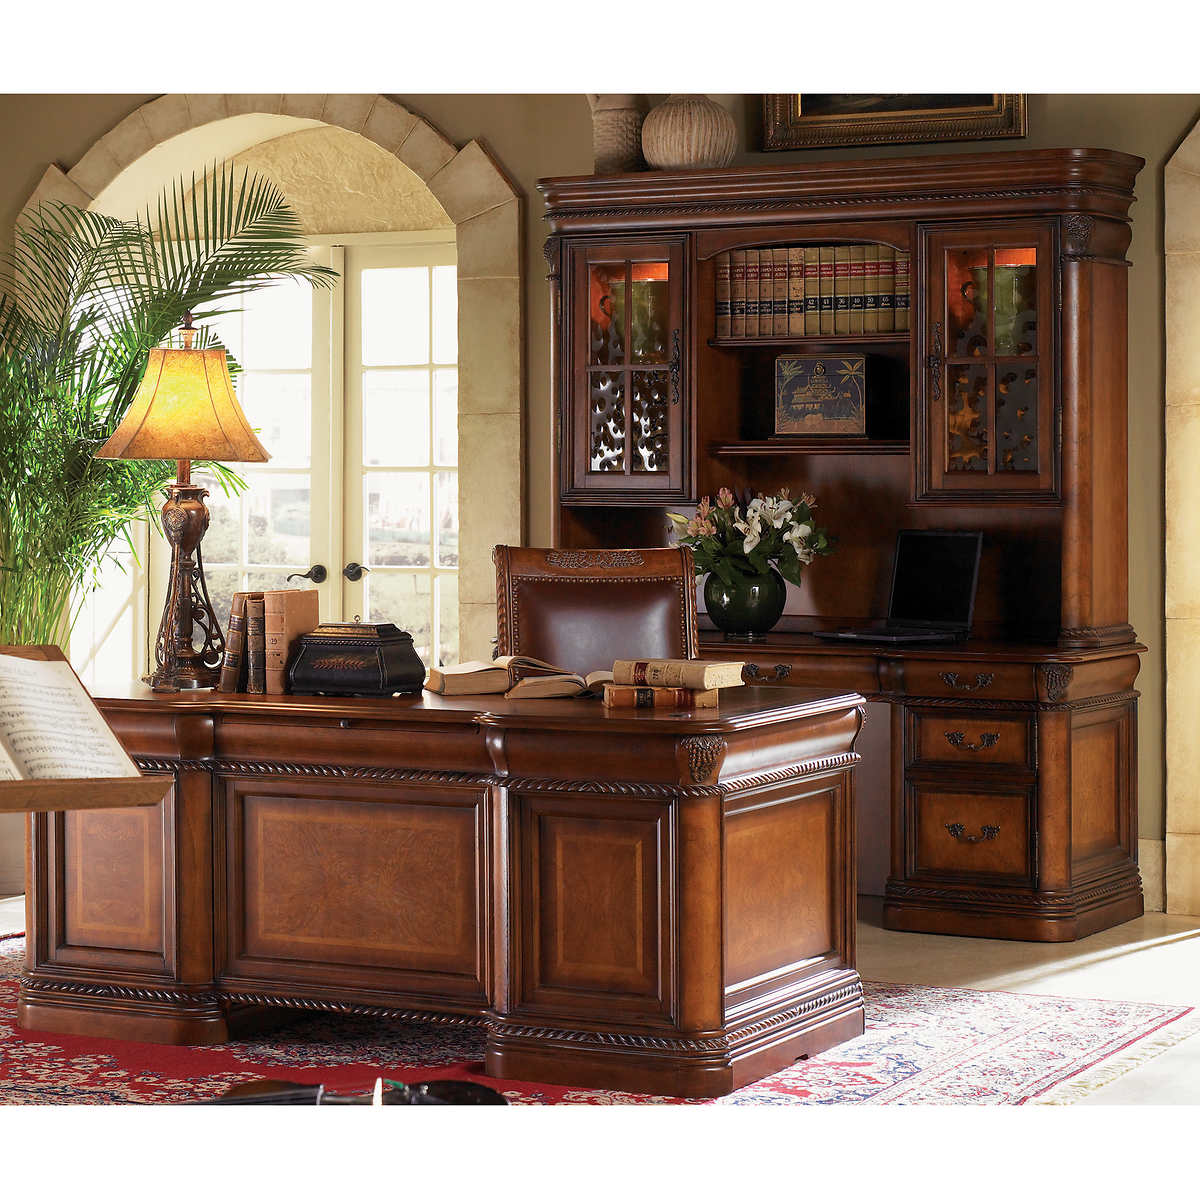 Executive office suite furniture - Vineyard Executive Office Suite Item 263112 Click To Zoom